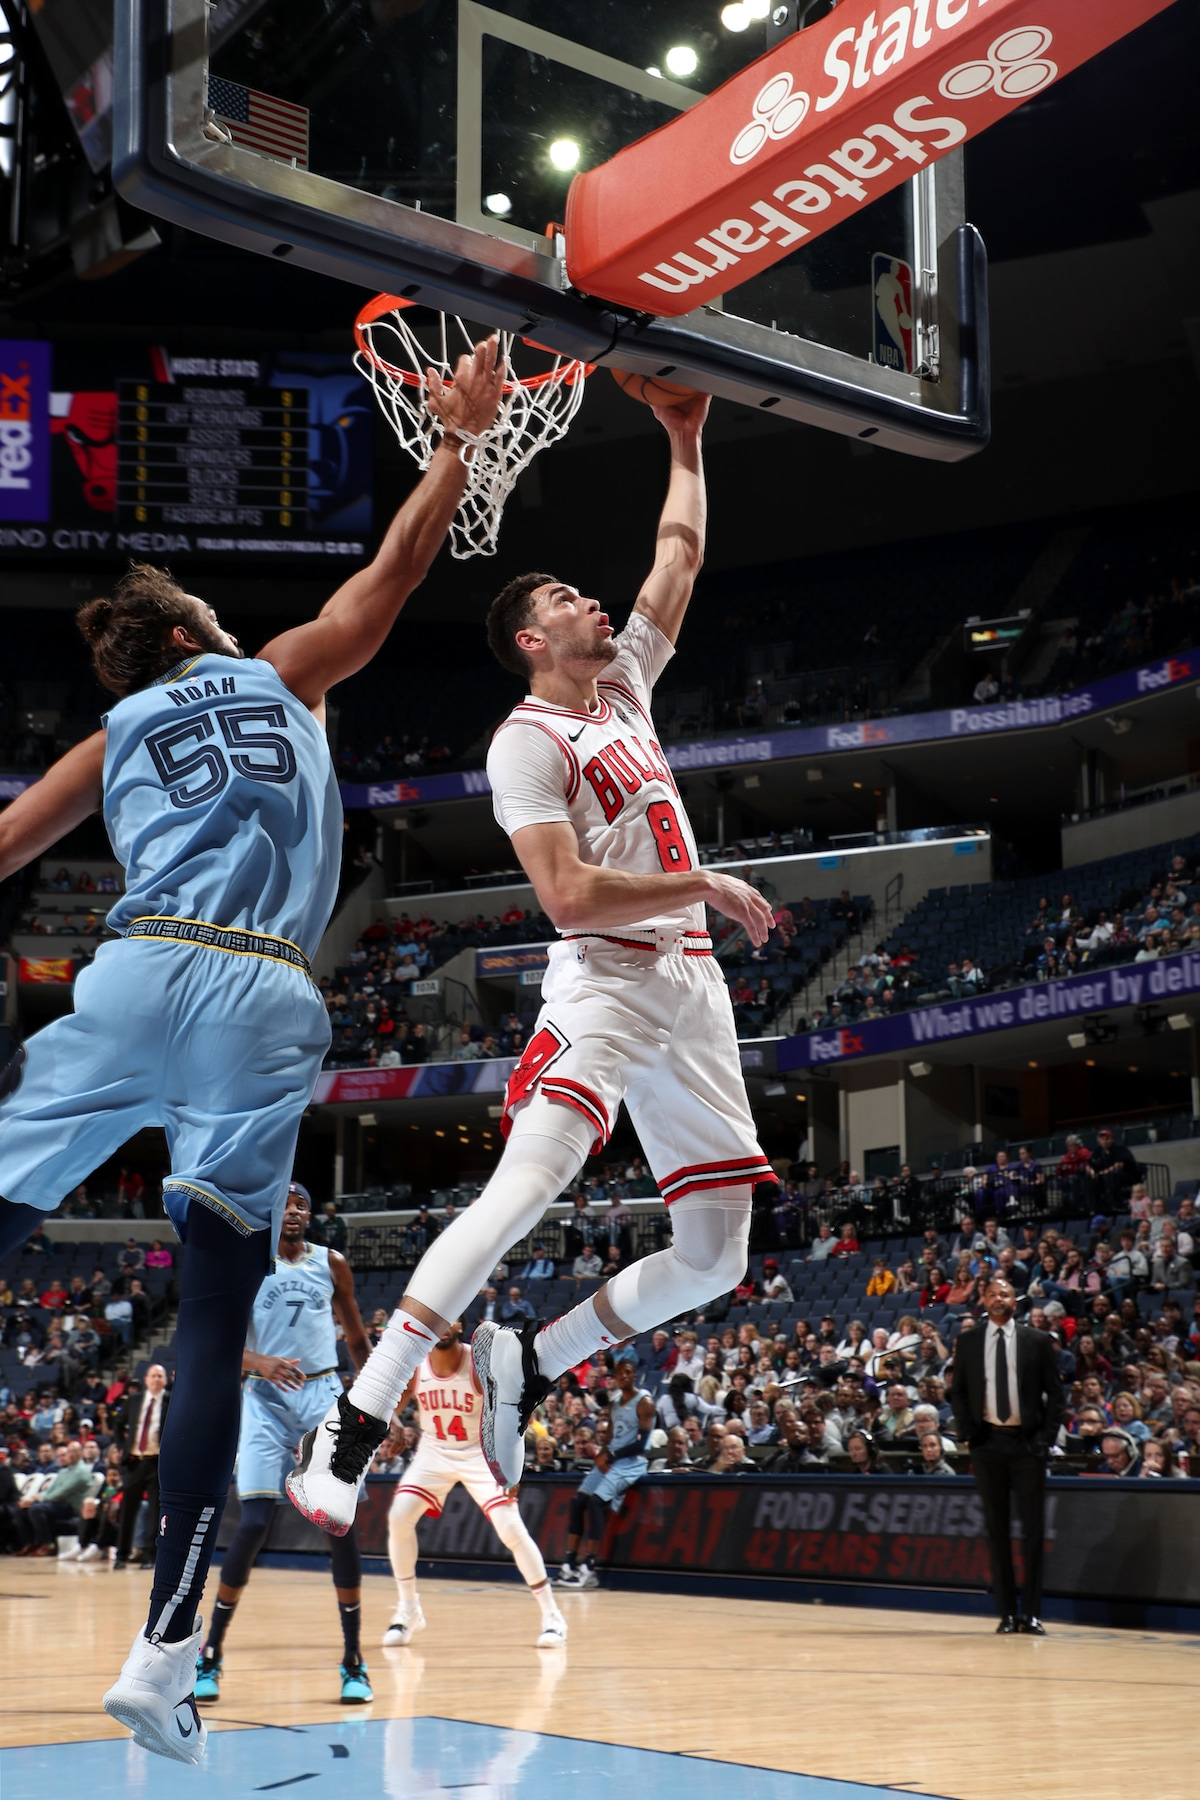 Zach LaVine goes for the layup against Joakim Noah of the Memphis Grizzlies